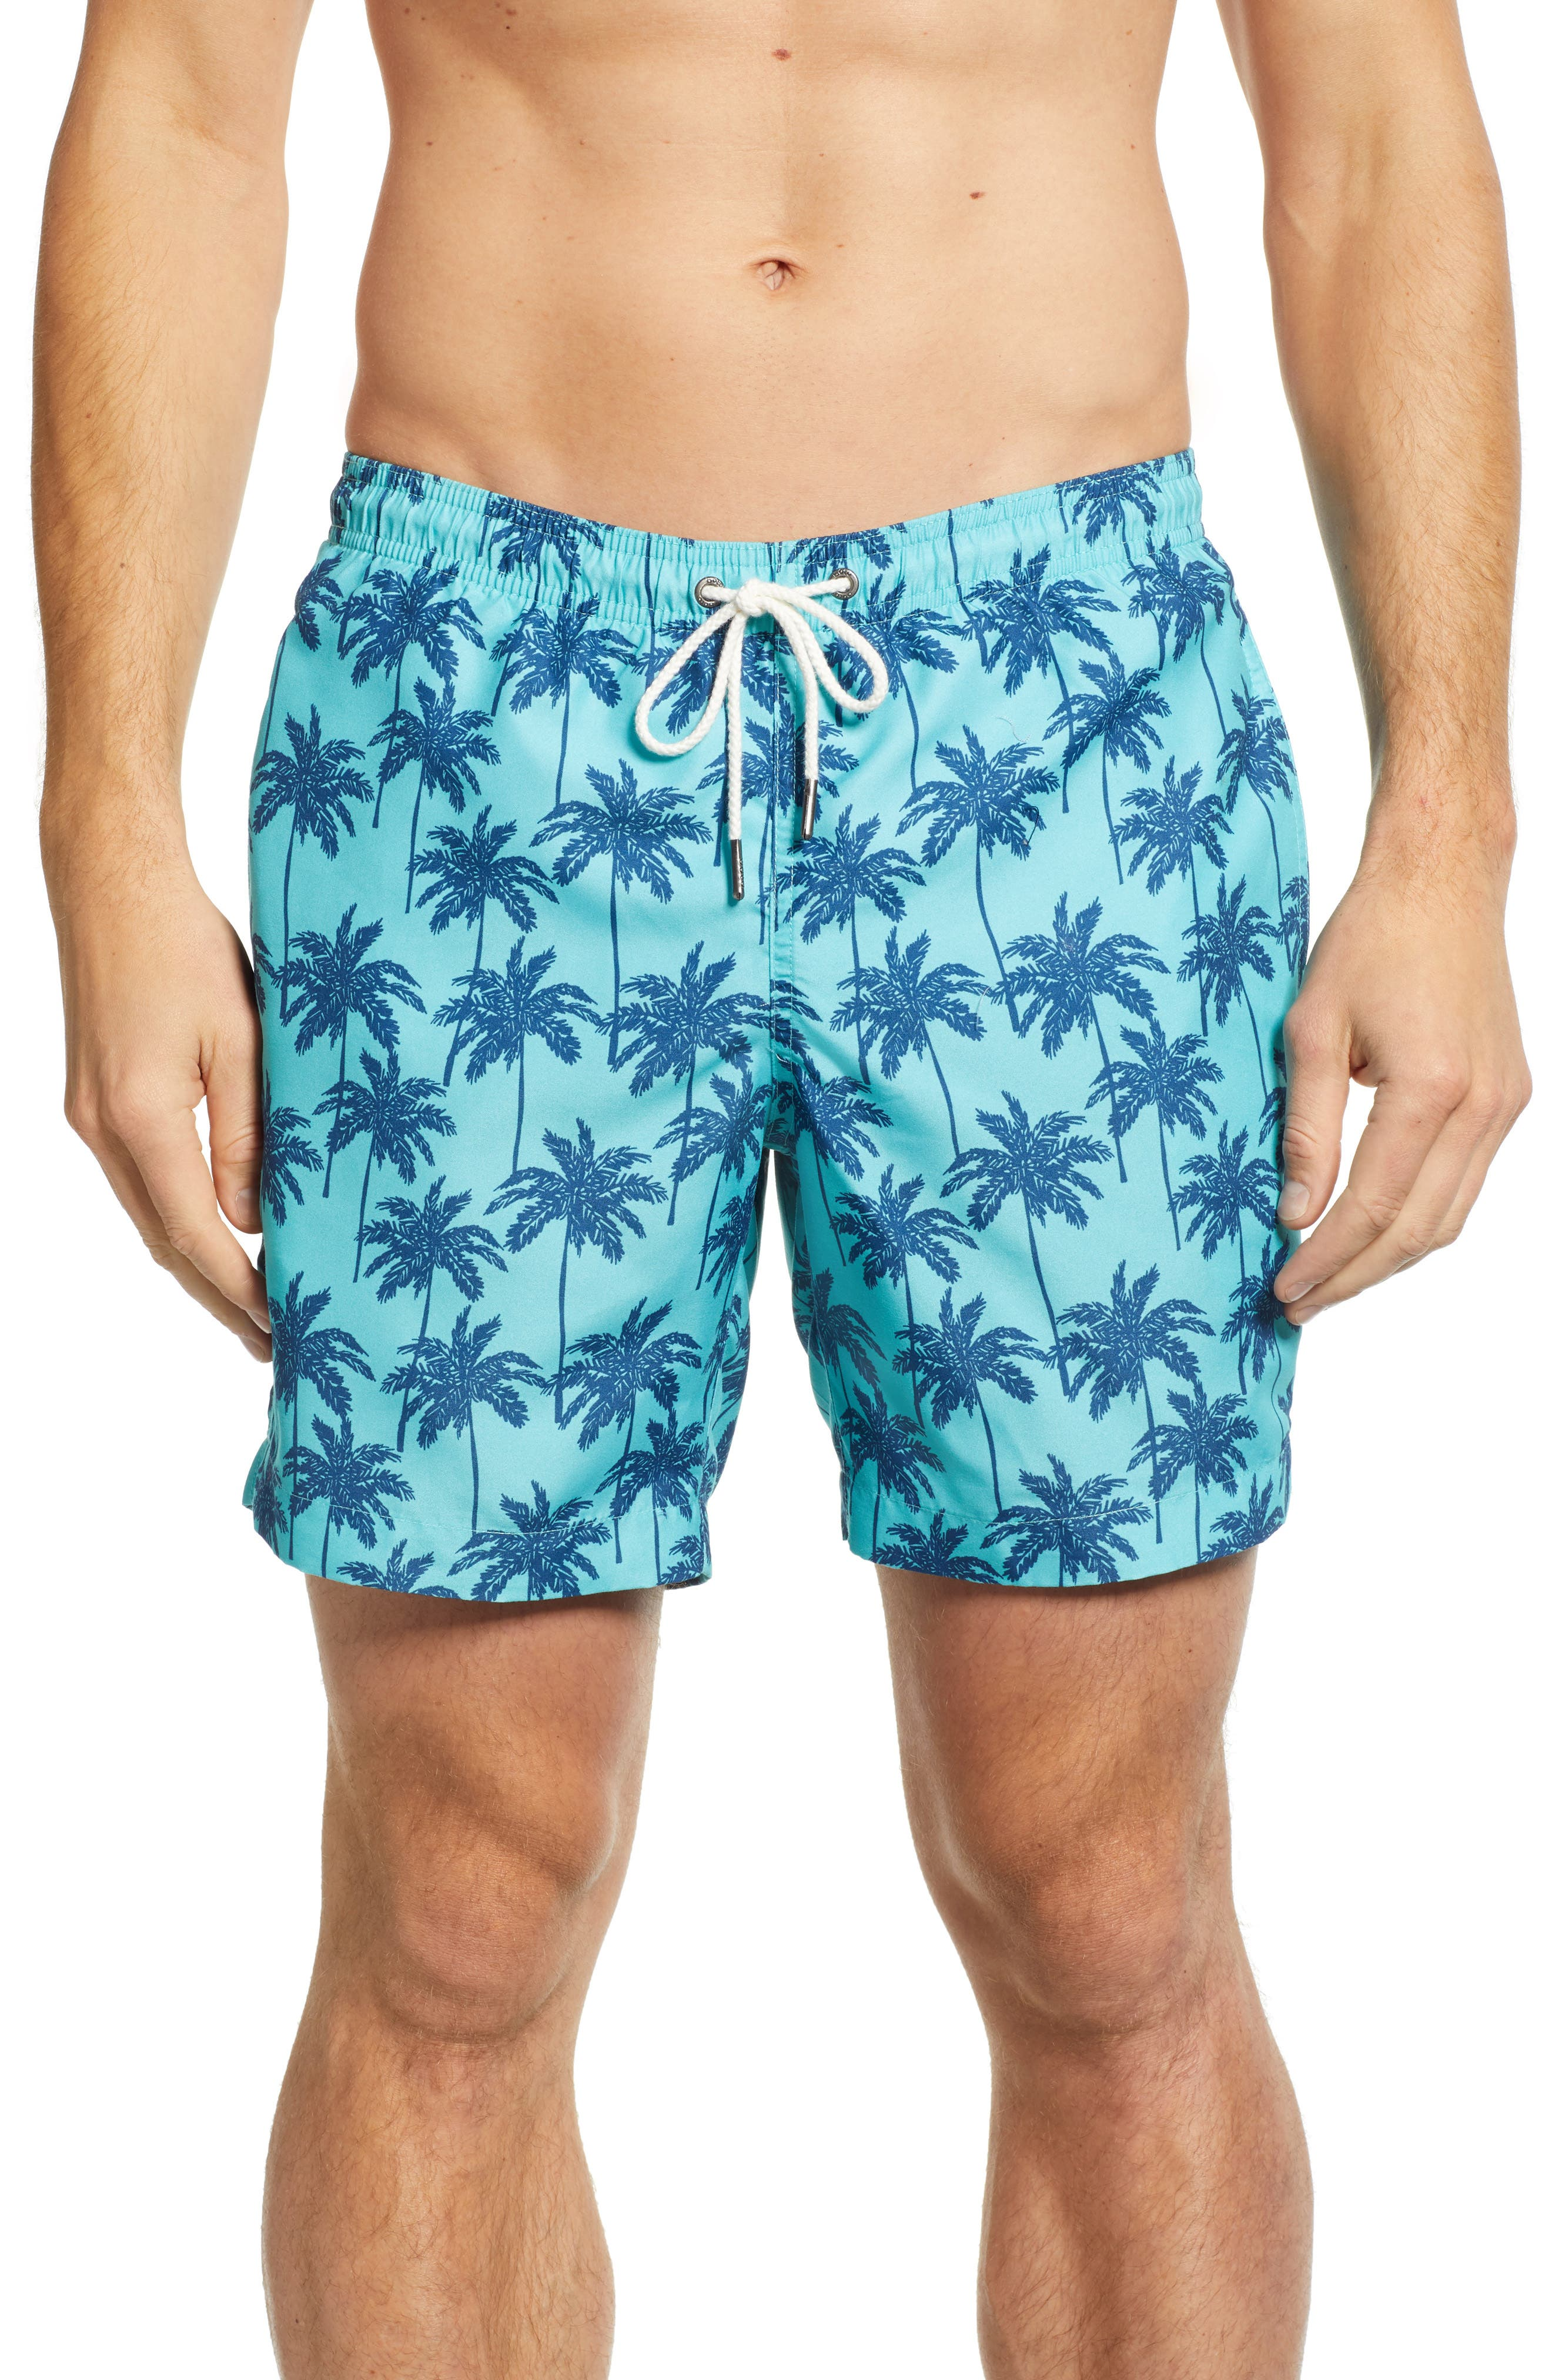 Cabo Palm Trees 6.5 Inch Swim Trunks, Main, color, 443